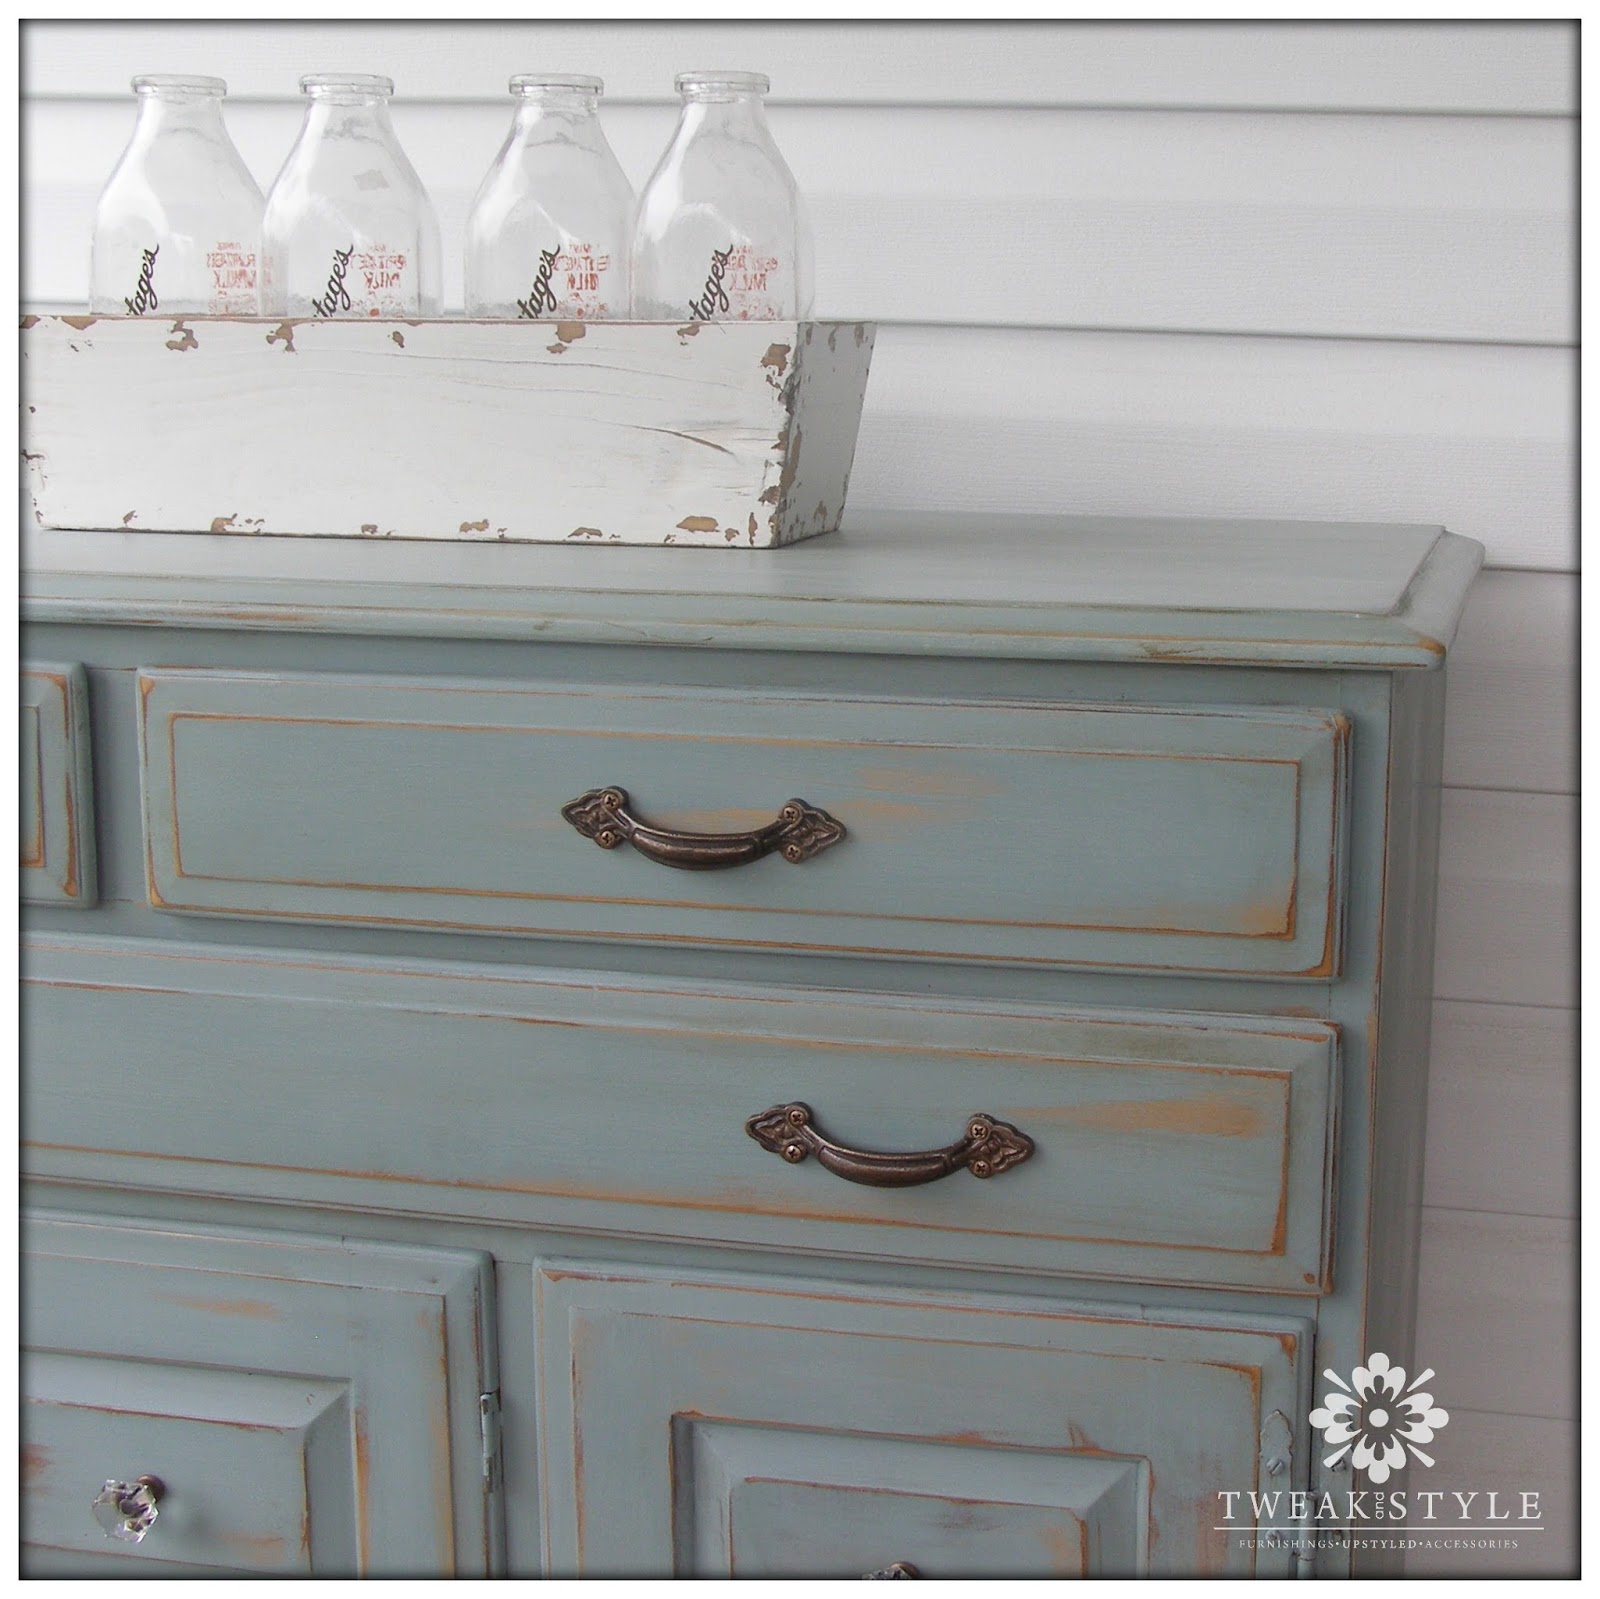 Tweak Amp Style Blog Two Toned Glam Distressing With Duck